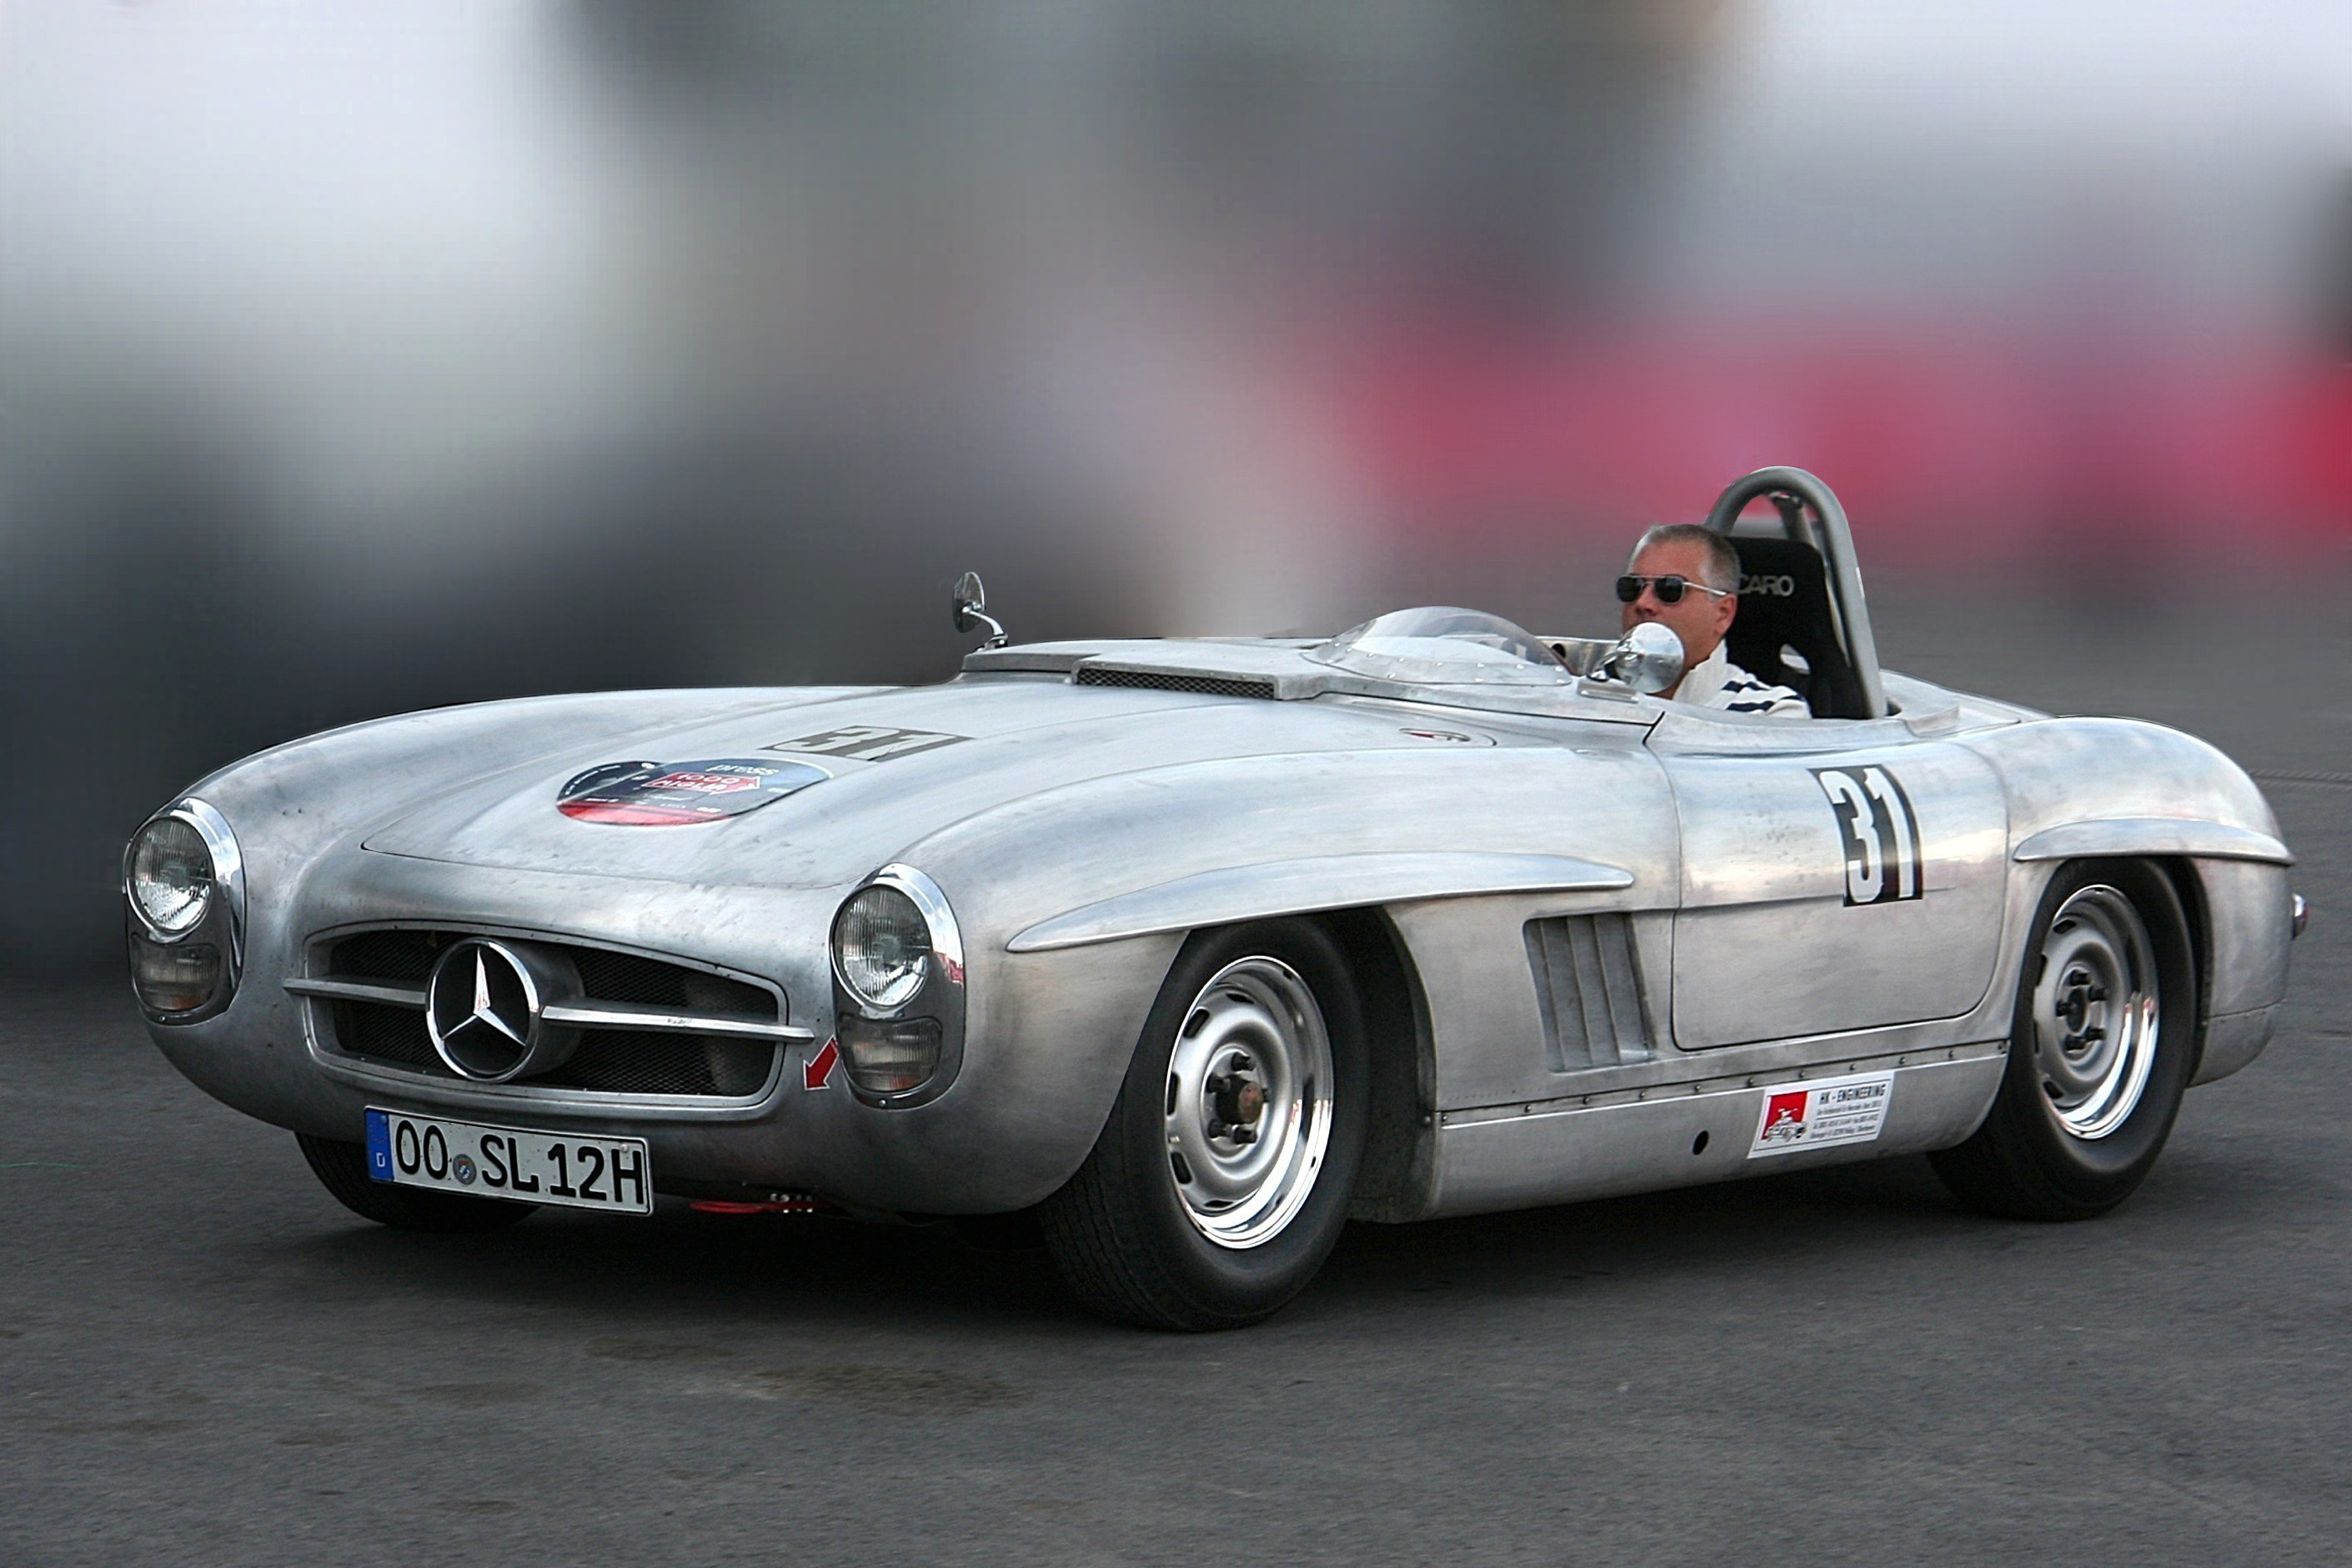 File:Mercedes-Benz 300 SLS (Umbau SL Roadster, Bj. 1957) 2009-08-07 ret2.jpg - Wikimedia Commons